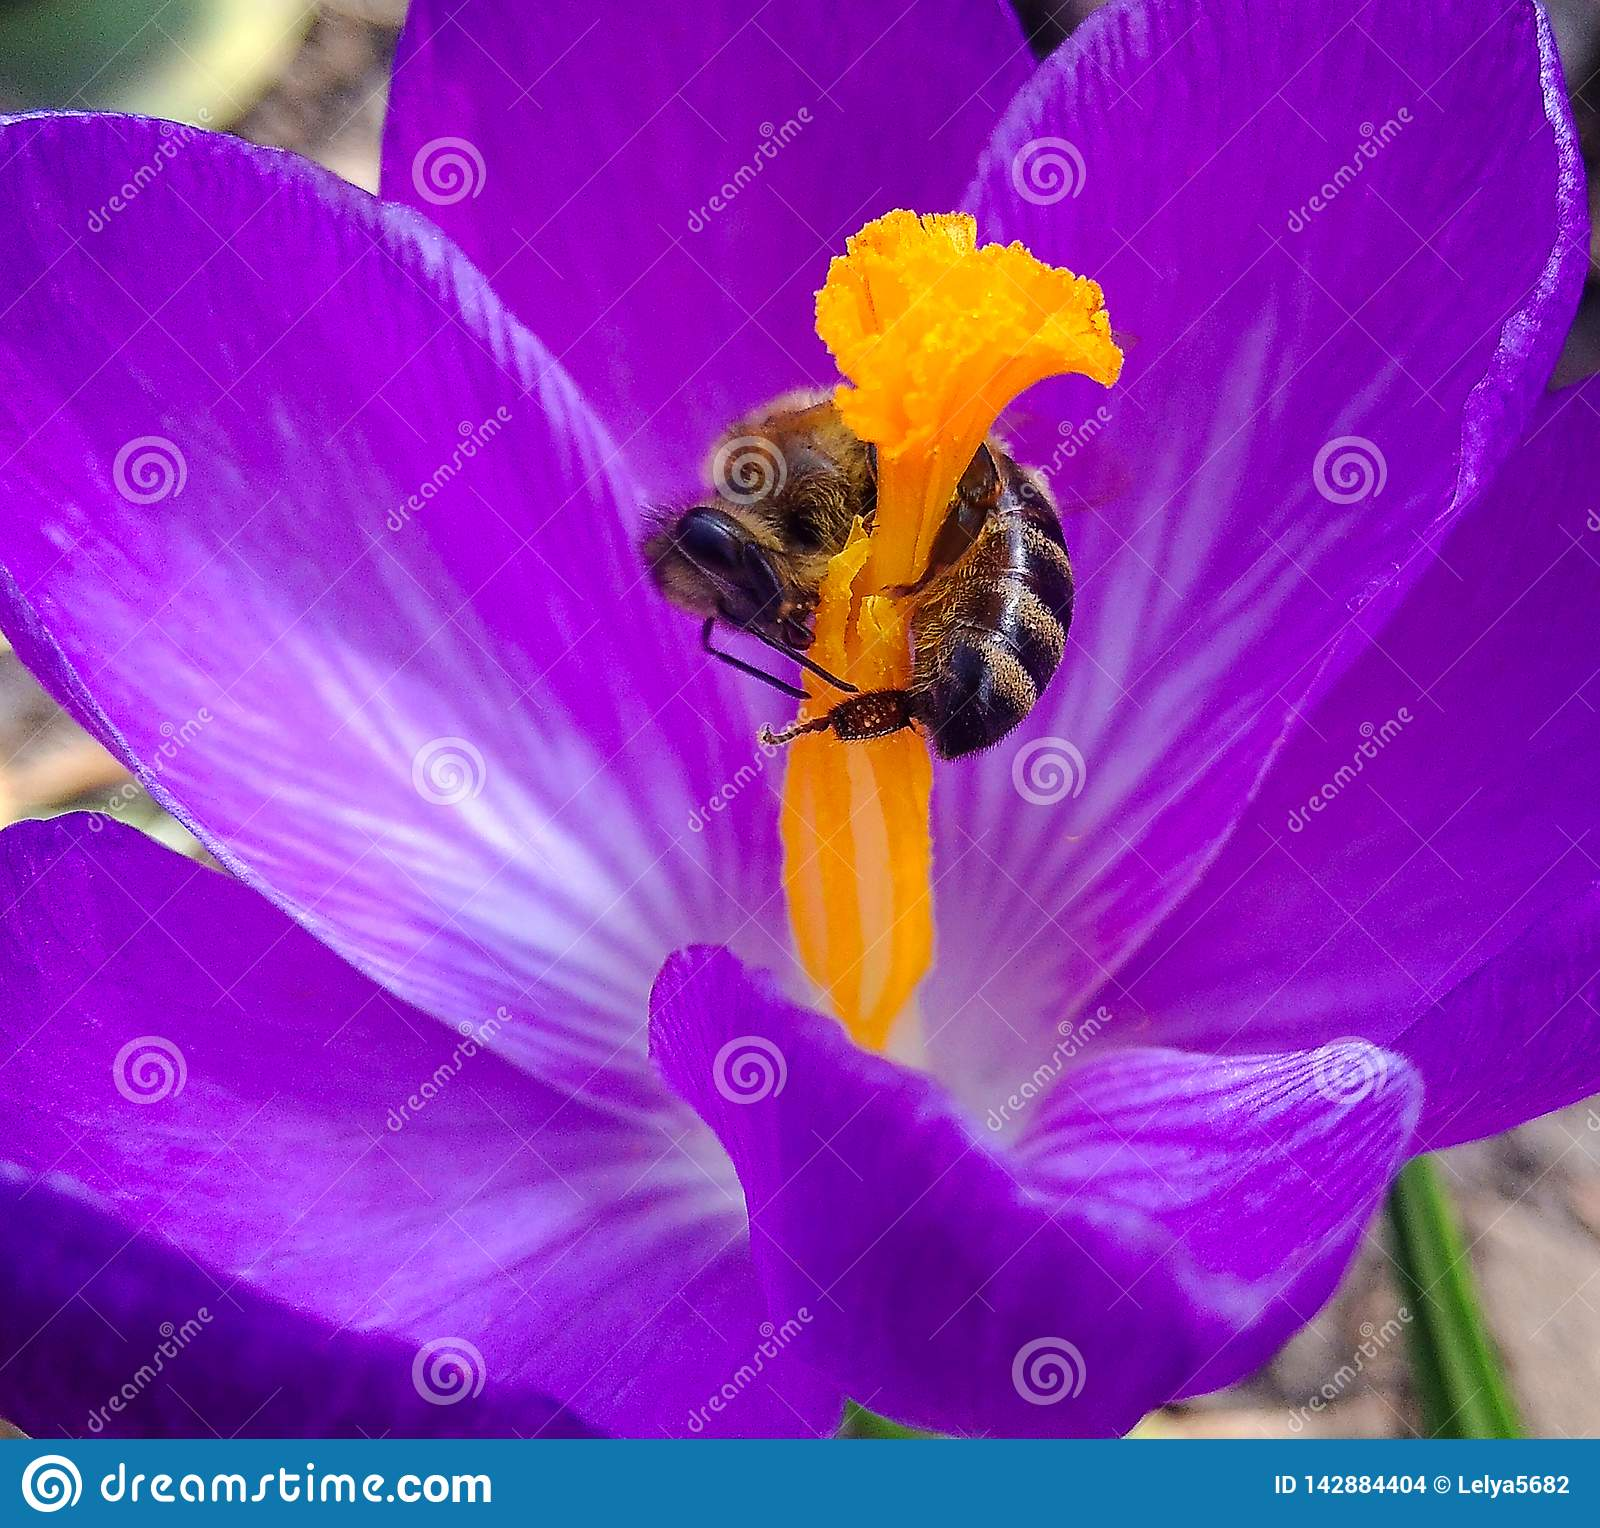 Spring, flower and bee. Bee on the flower Crocus spring. Bee on a flower close up. Selective focus.